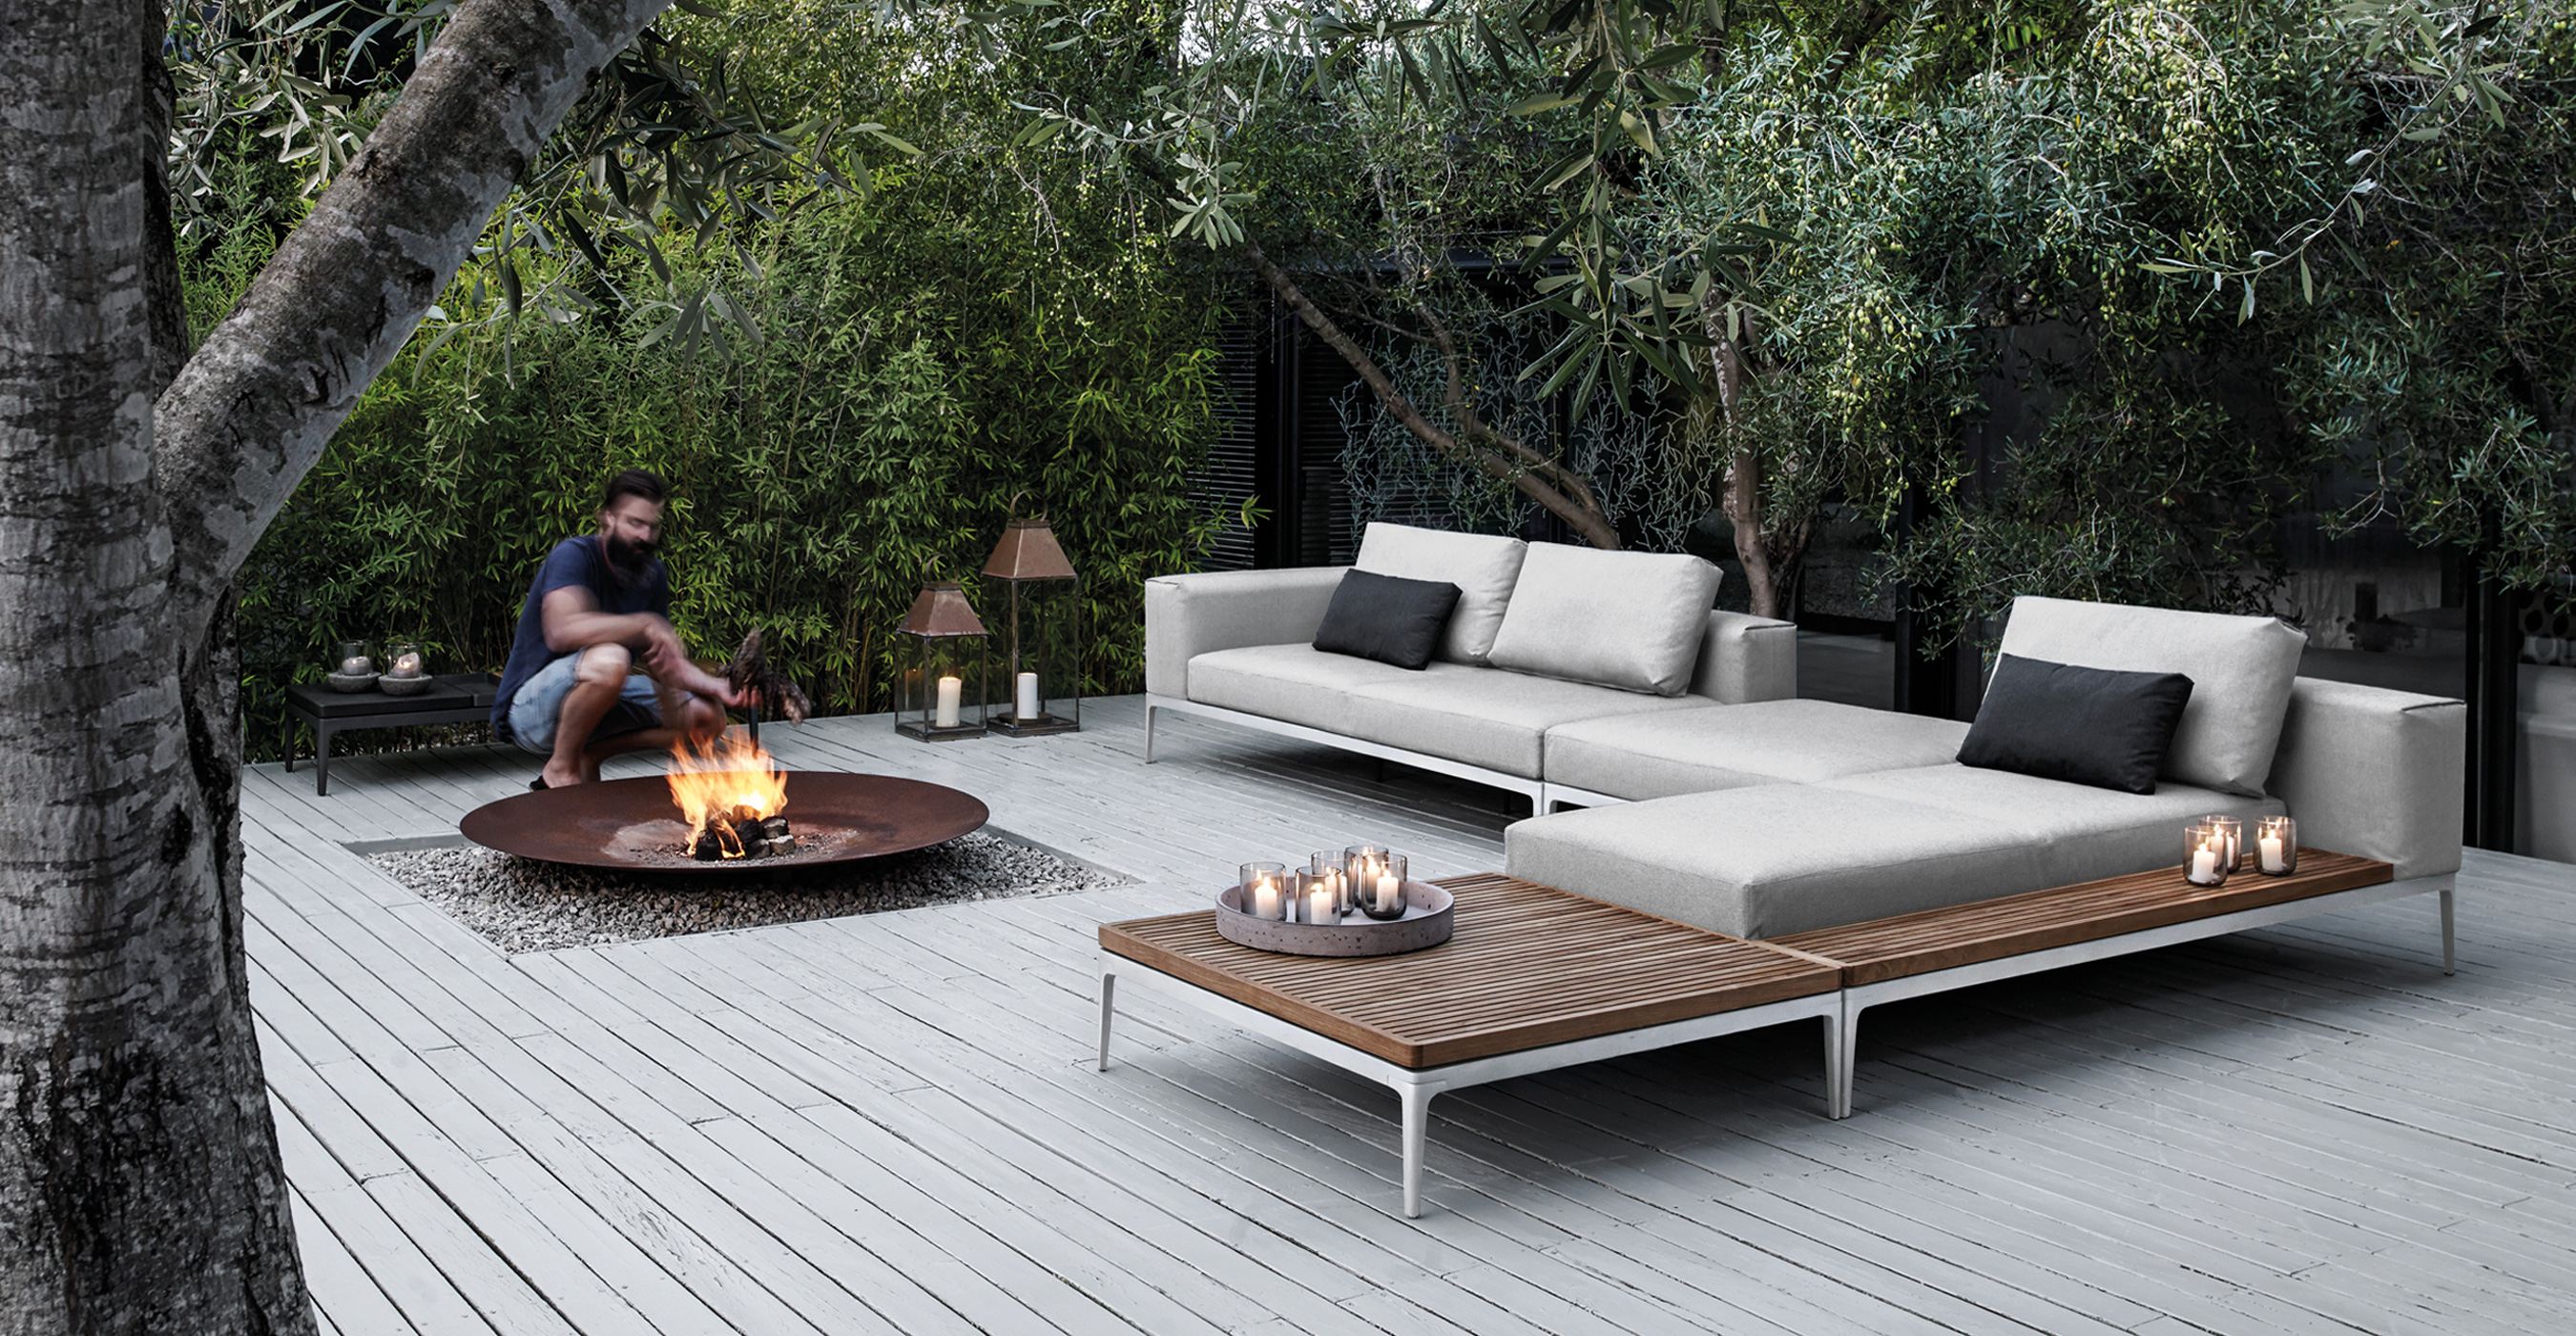 Patio 1 | Outdoor Furniture